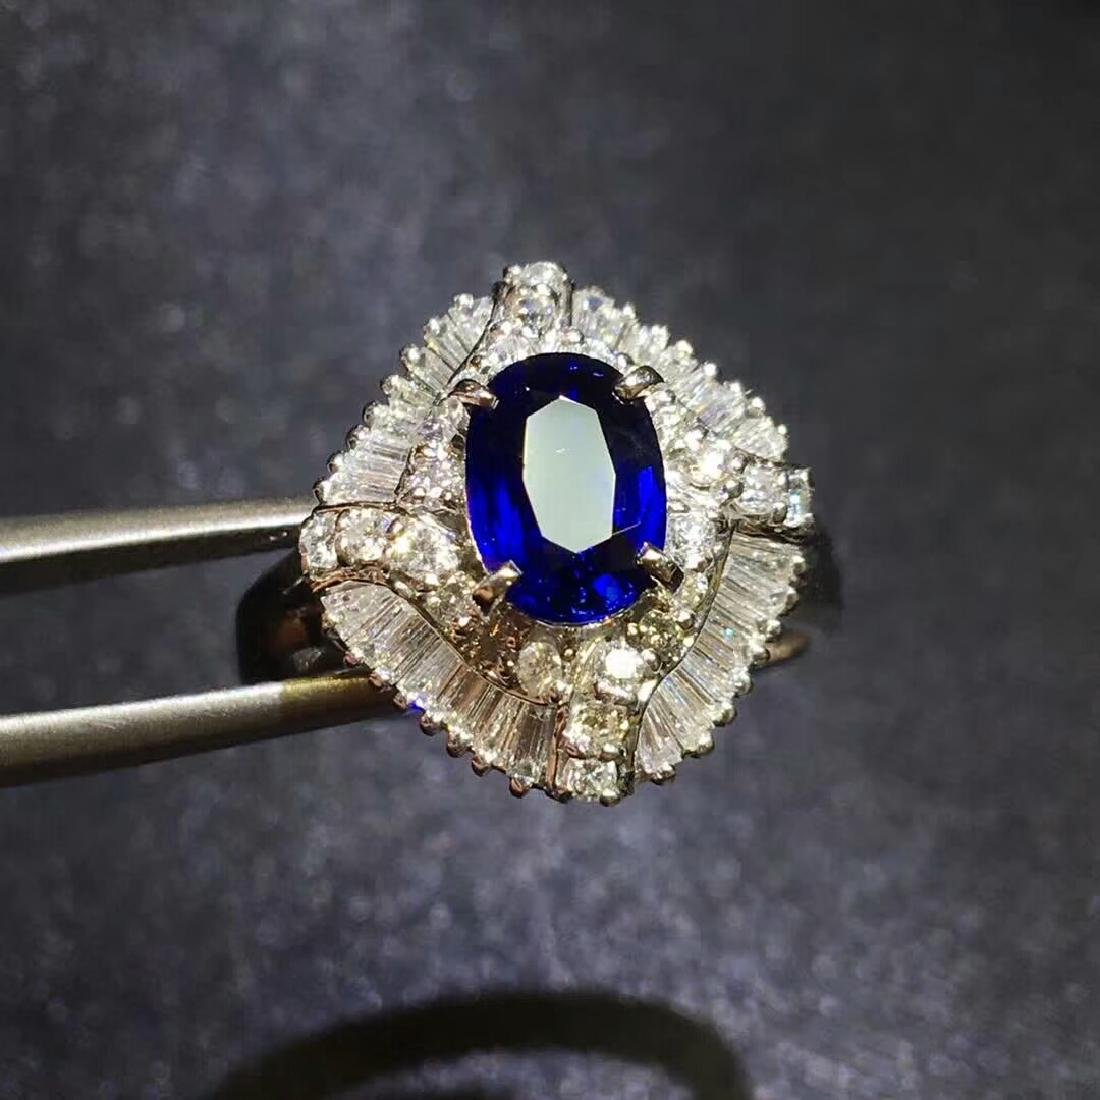 1.27ct Sapphire in Ring 18kt Gold